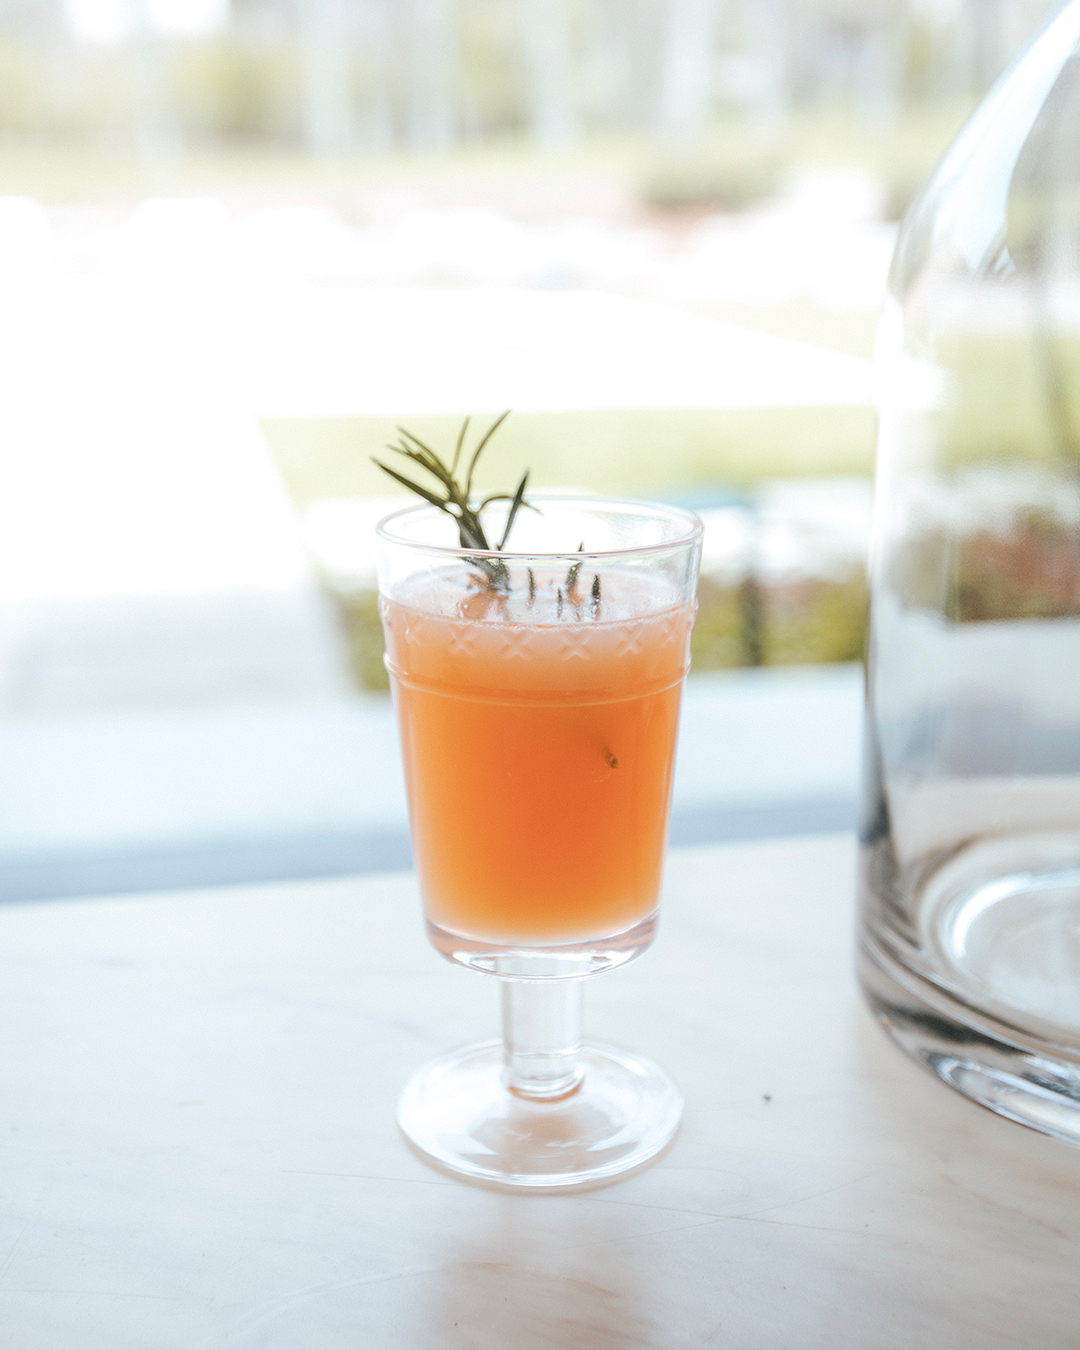 The-Oily-Home-Companion-Recipe-Grapefruit-Ginger-Rosemary-Spritzer-Non-Alcoholic-Vitality-Essential-Oil-Young-Living-Spring-Summer.jpg